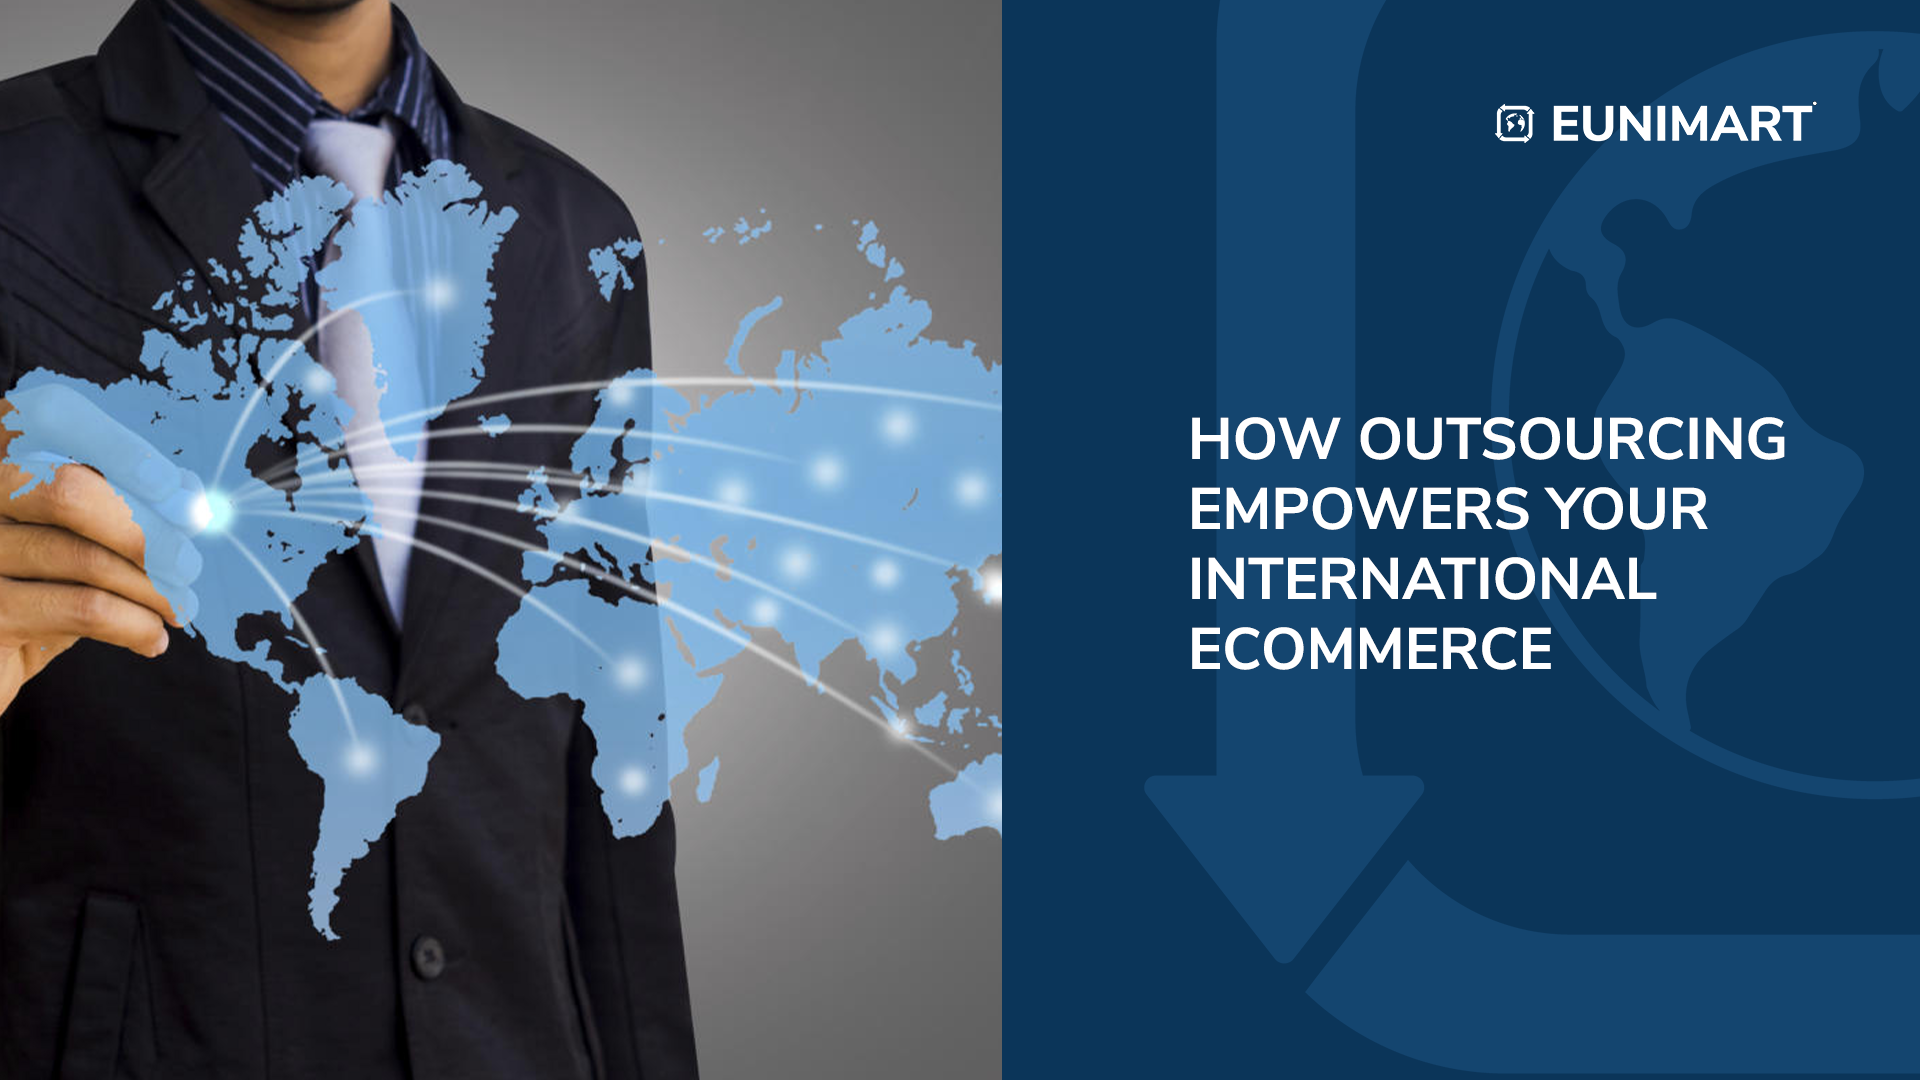 HOW OUTSOURCING EMPOWERS YOUR INTERNATIONAL ECOMMERCE